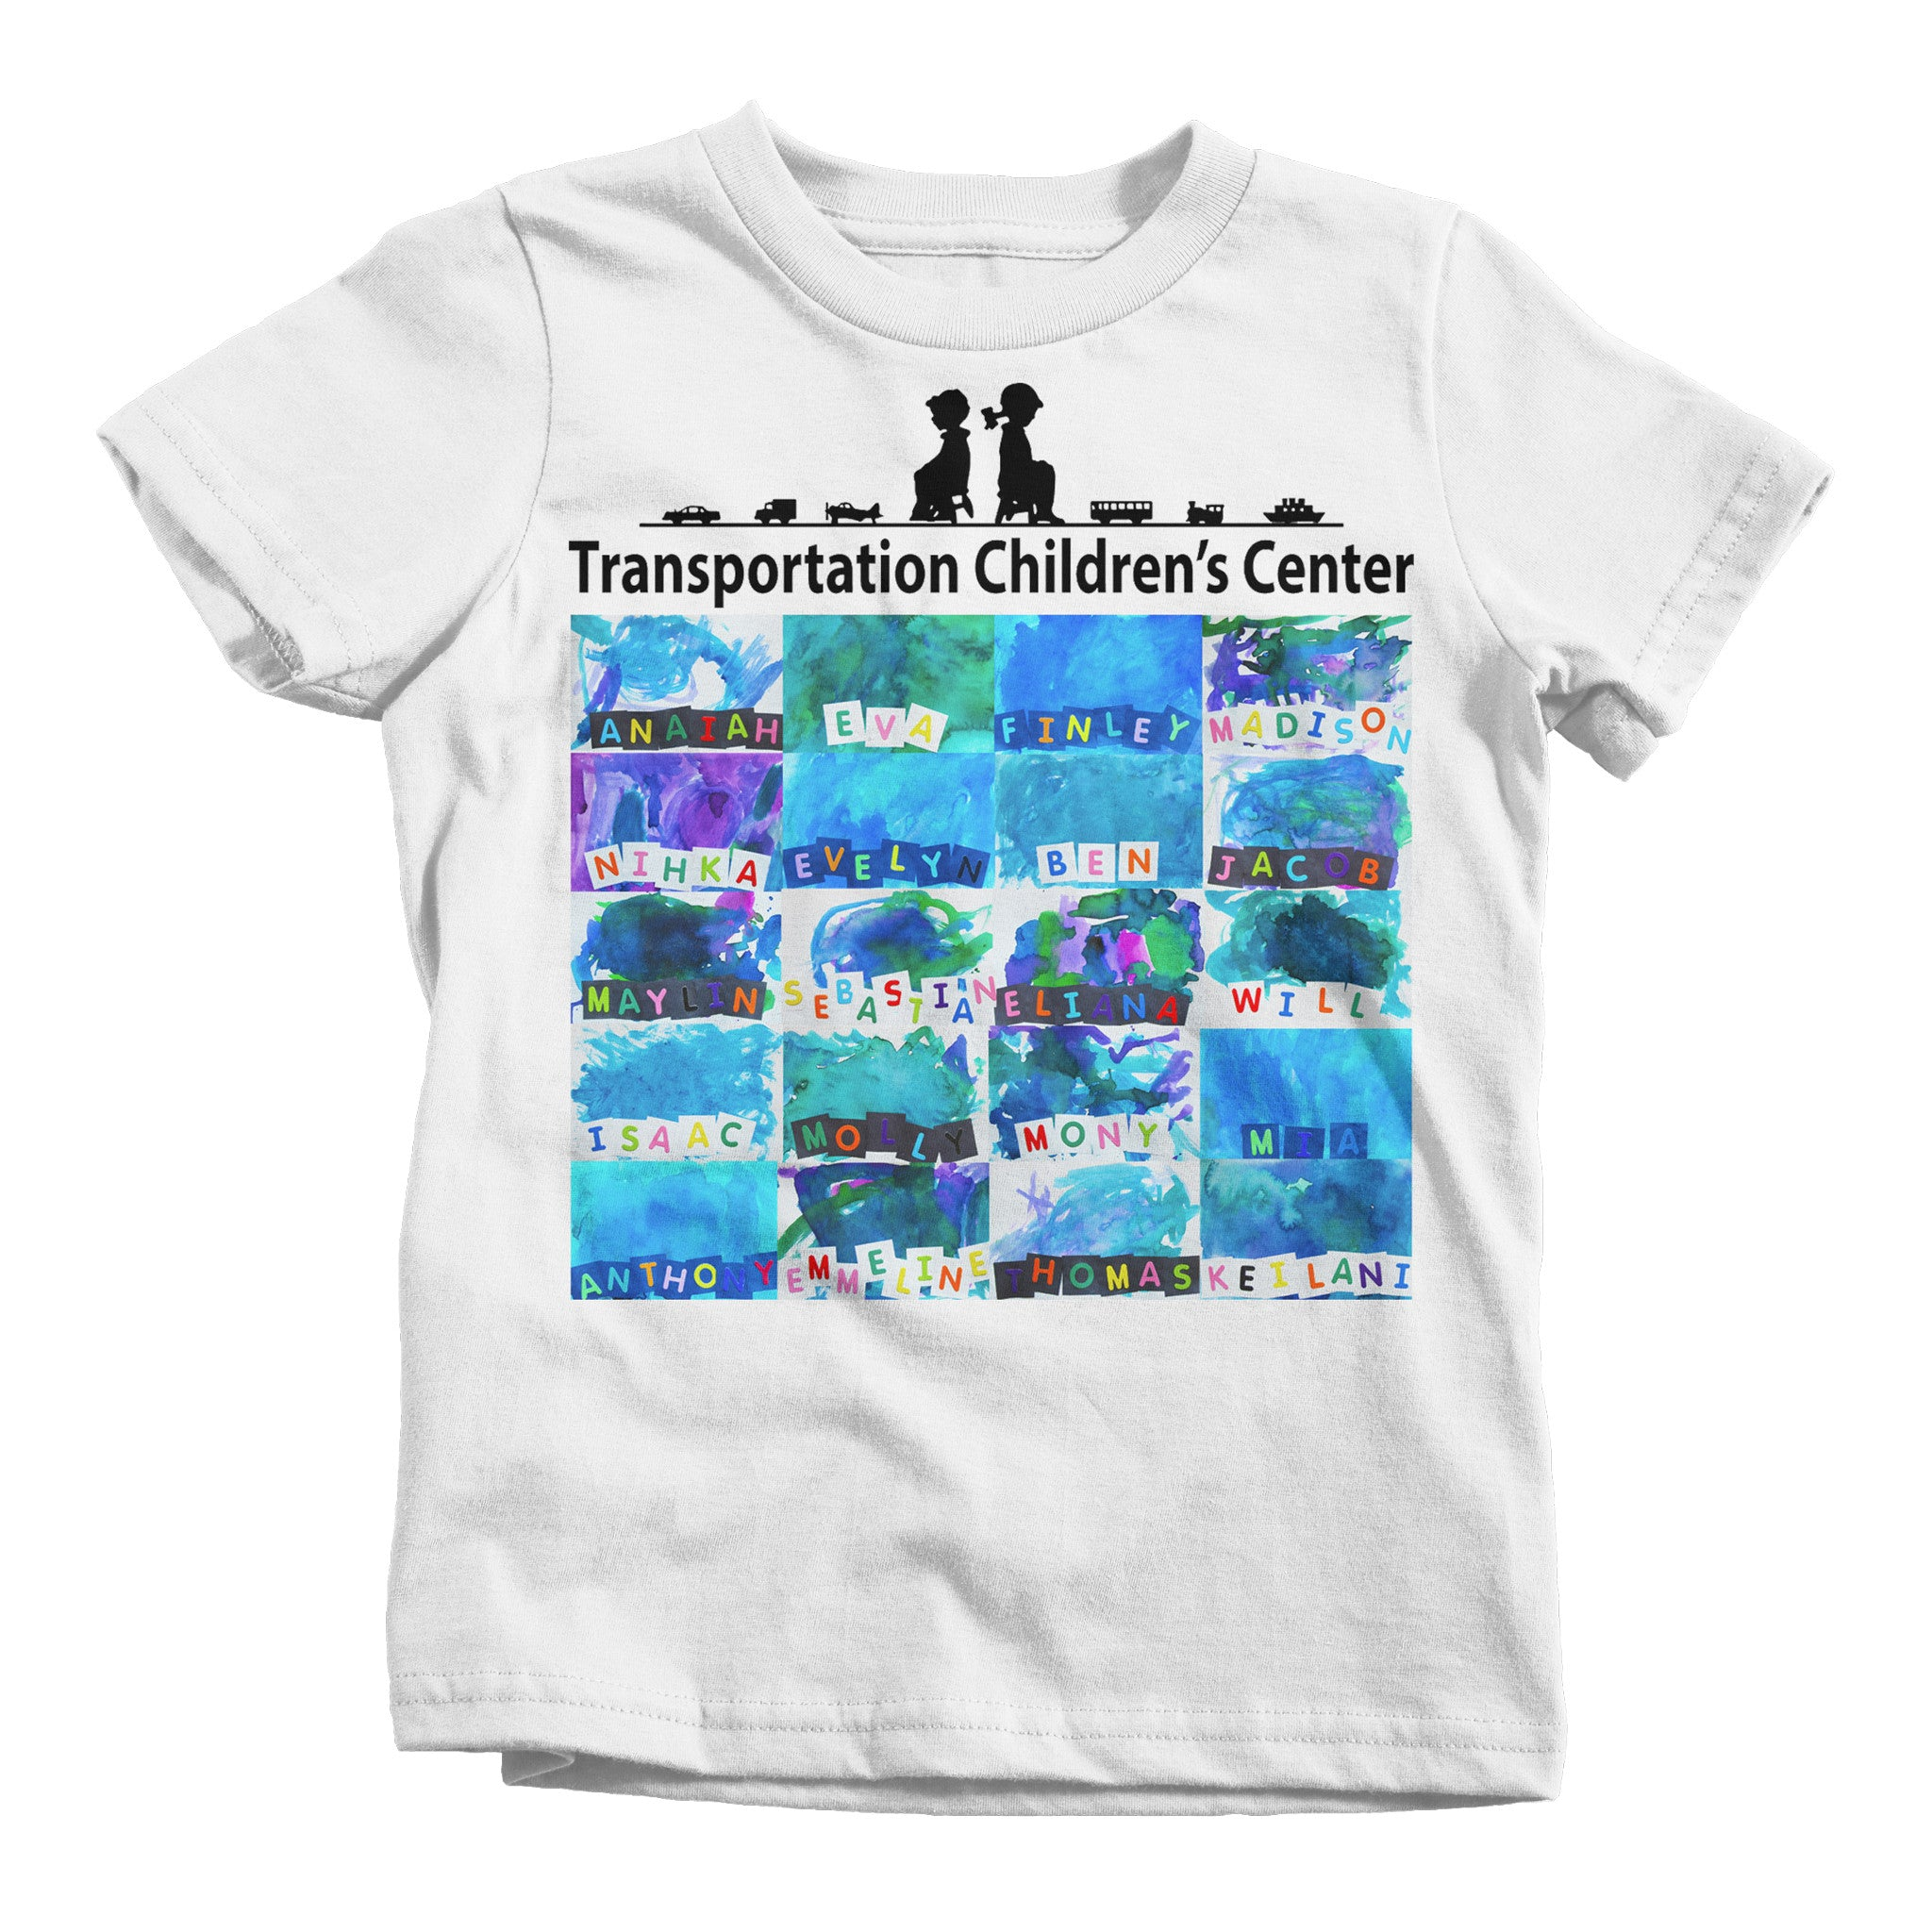 Preschool One - Adult T-shirt - Rightside Shirts